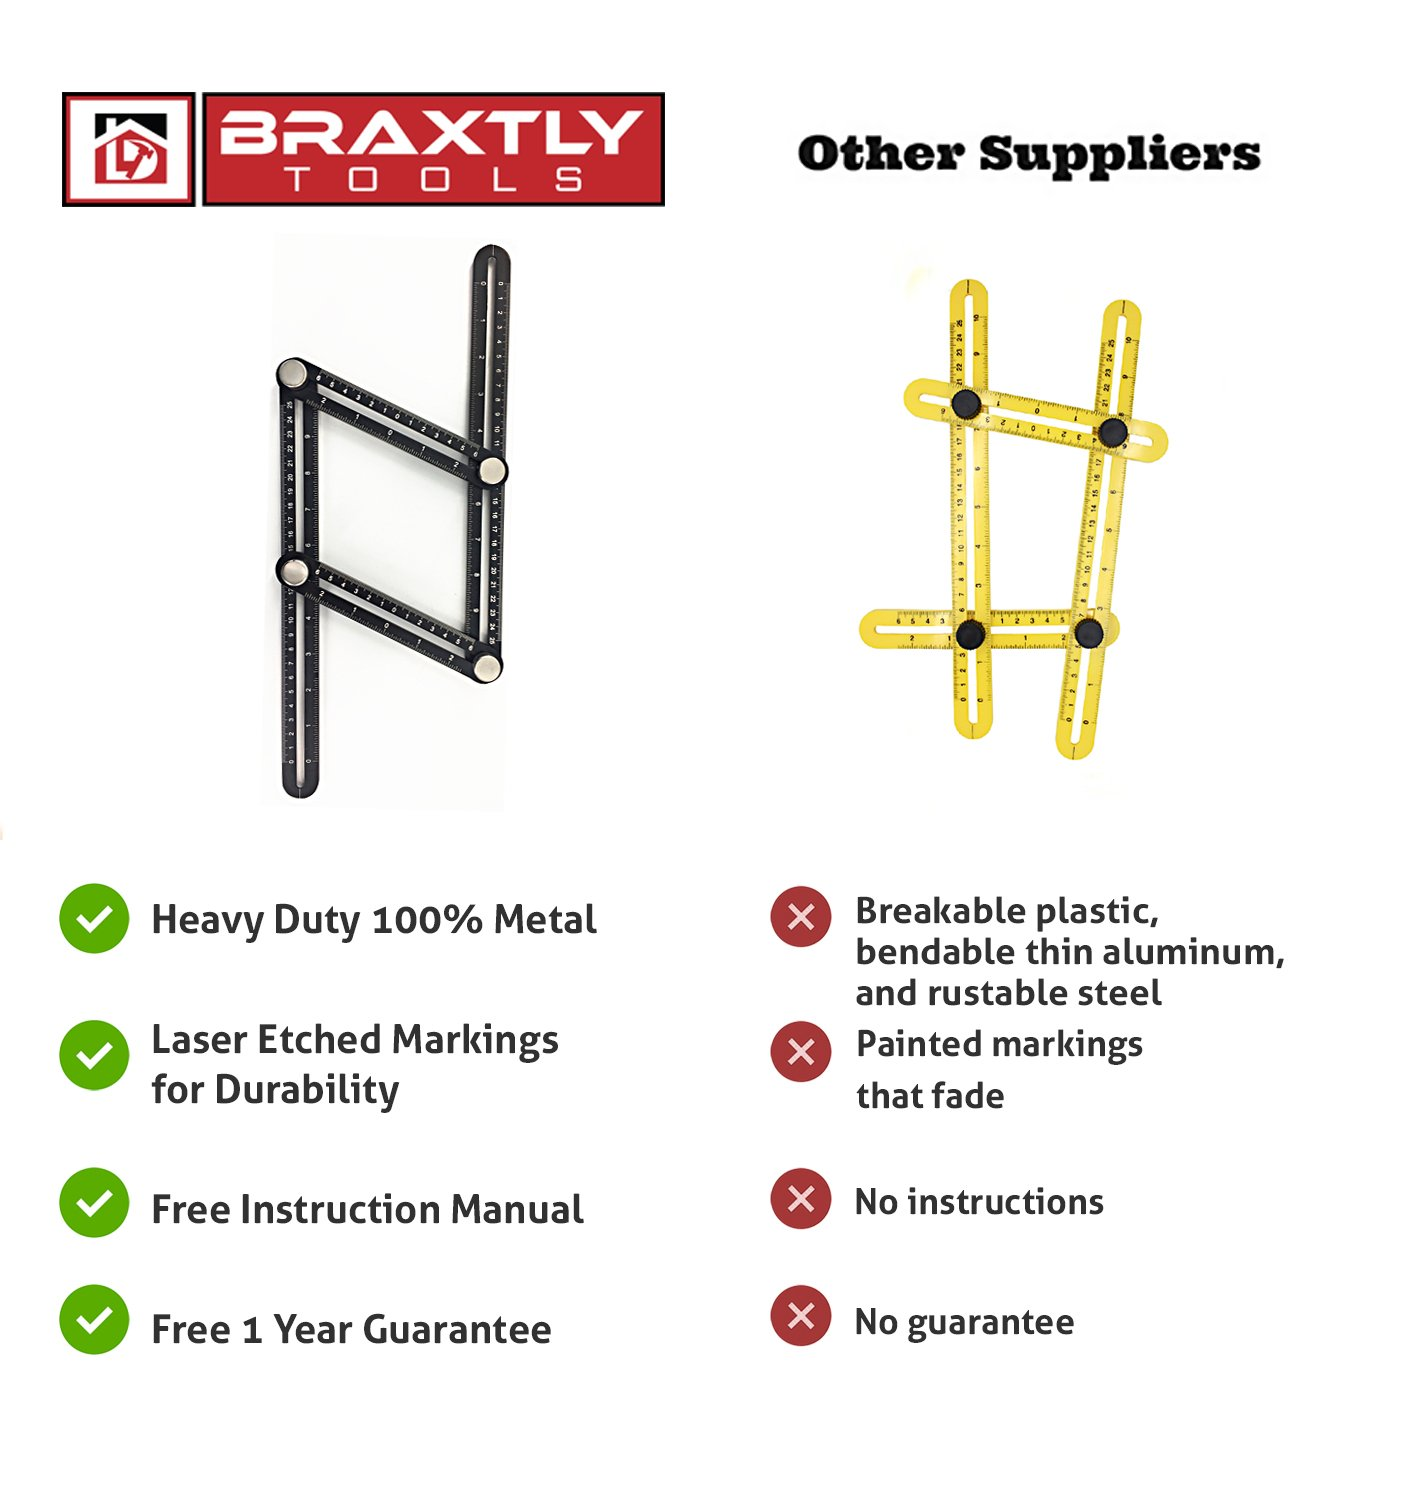 Braxtly Tools EASY ANGLE-ER HEAVY DUTY Template Tool - Ultimate Multi Angle Ruler - For Measuring Angles - Made of Premium Metal Alloy- Adjustable Knobs for Precise Measurement- w/Instruction Manual by Braxtly Tools (Image #4)